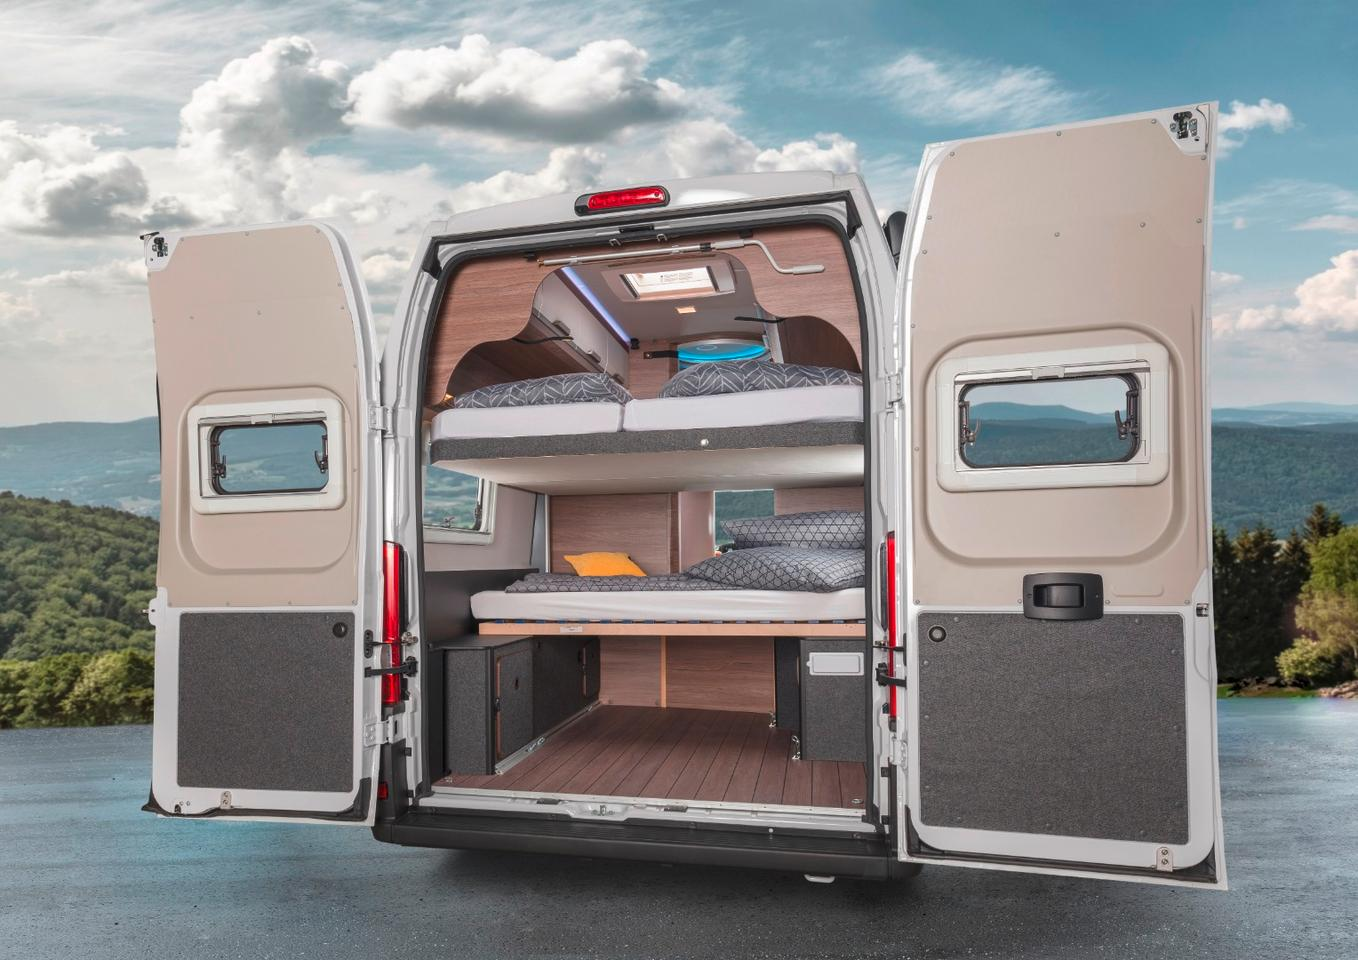 The Boxlife 630 ME's optional lower bed creates a four-sleeper rear cargo area